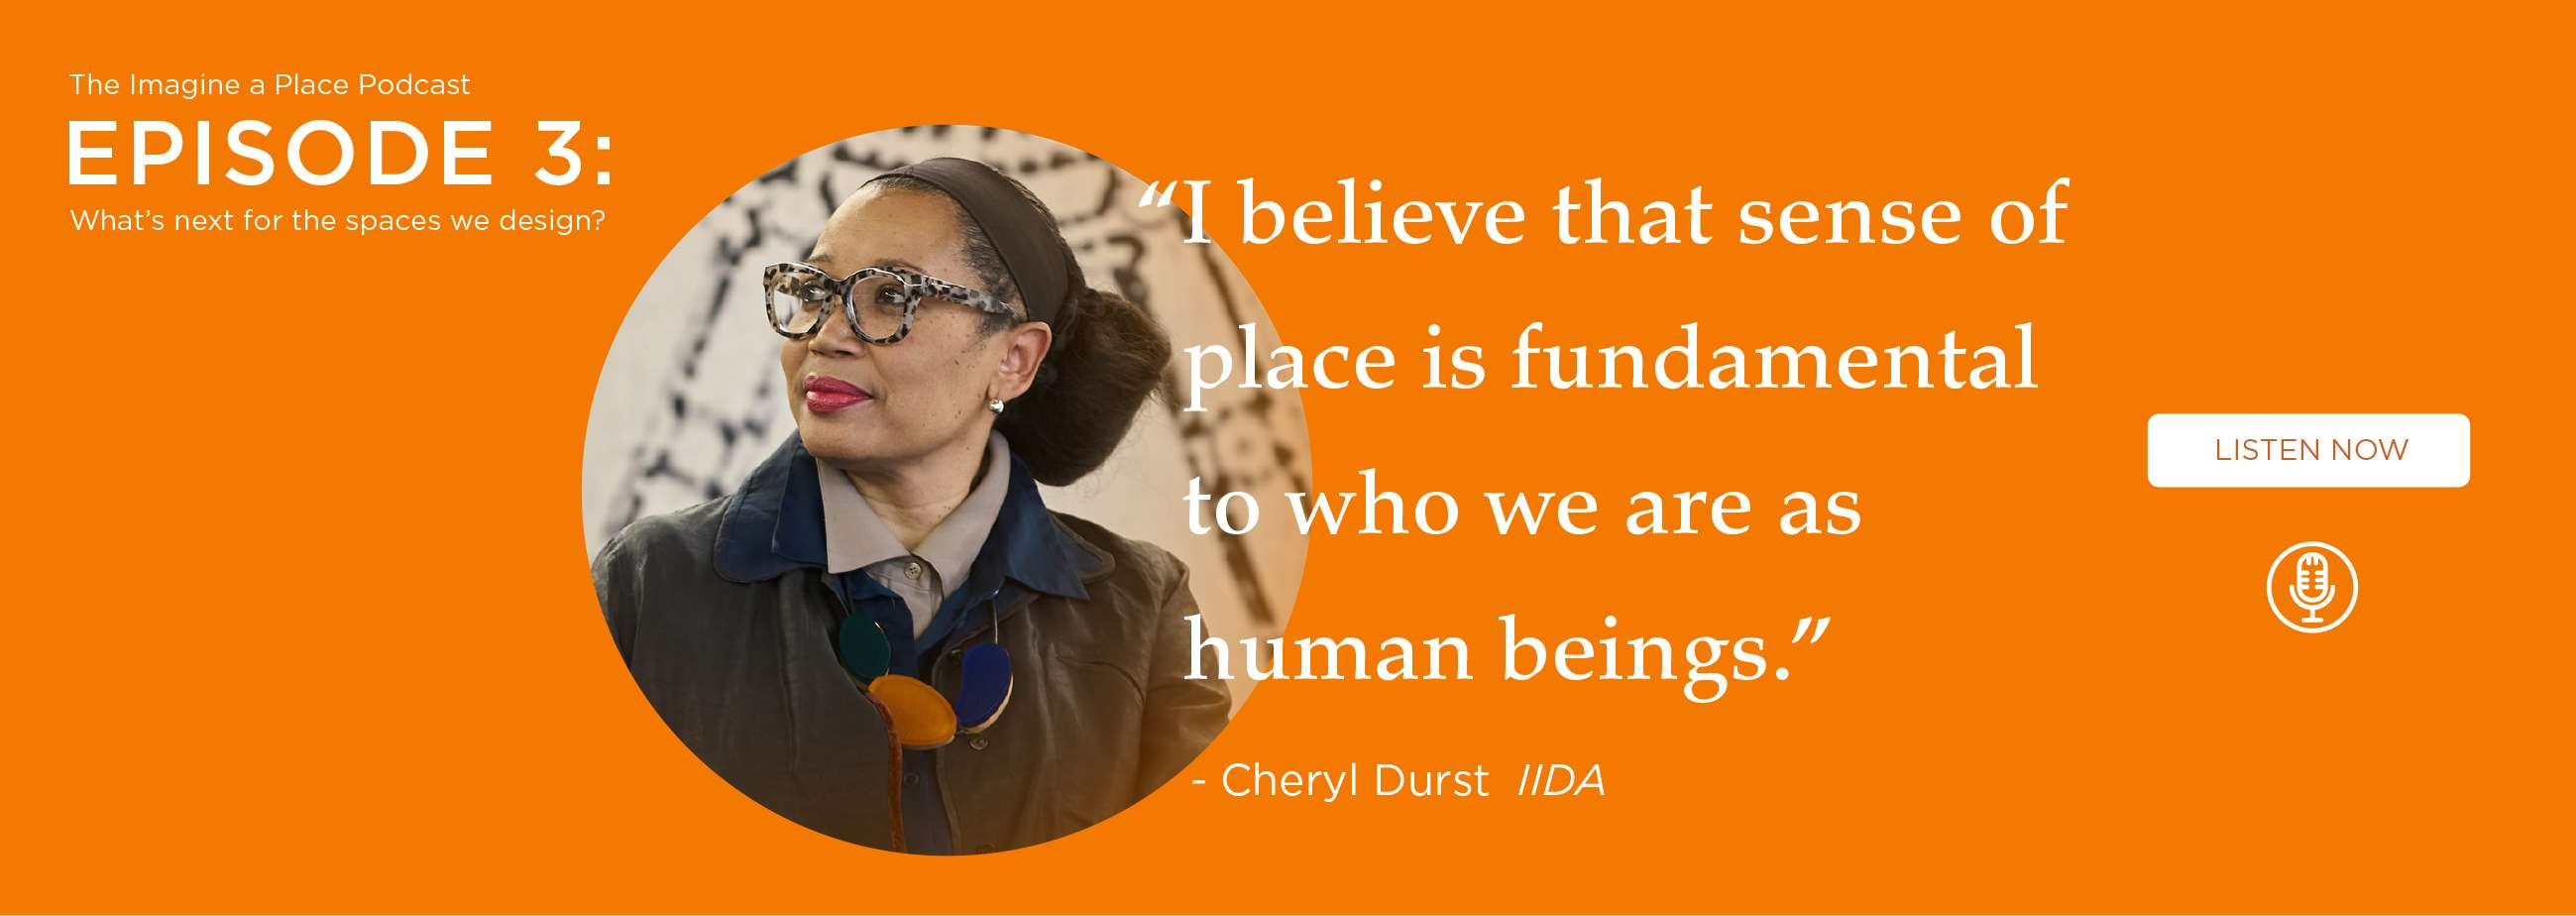 Cheryl Durst (IIDA): What's next for the spaces we design? - Ep.03